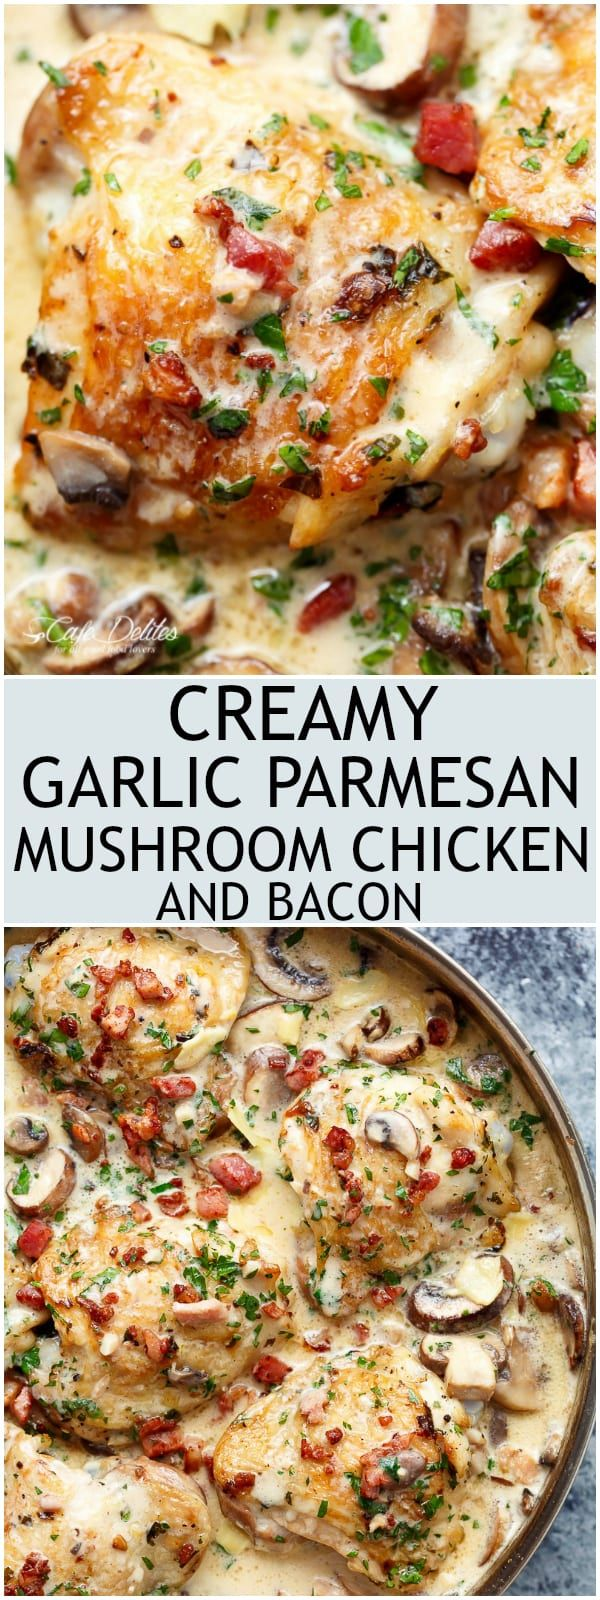 Creamy Garlic Parmesan Mushroom Chicken & Bacon is packed full of flavour for an easy, weeknight dinner the whole family will love!   https://cafedelites.com